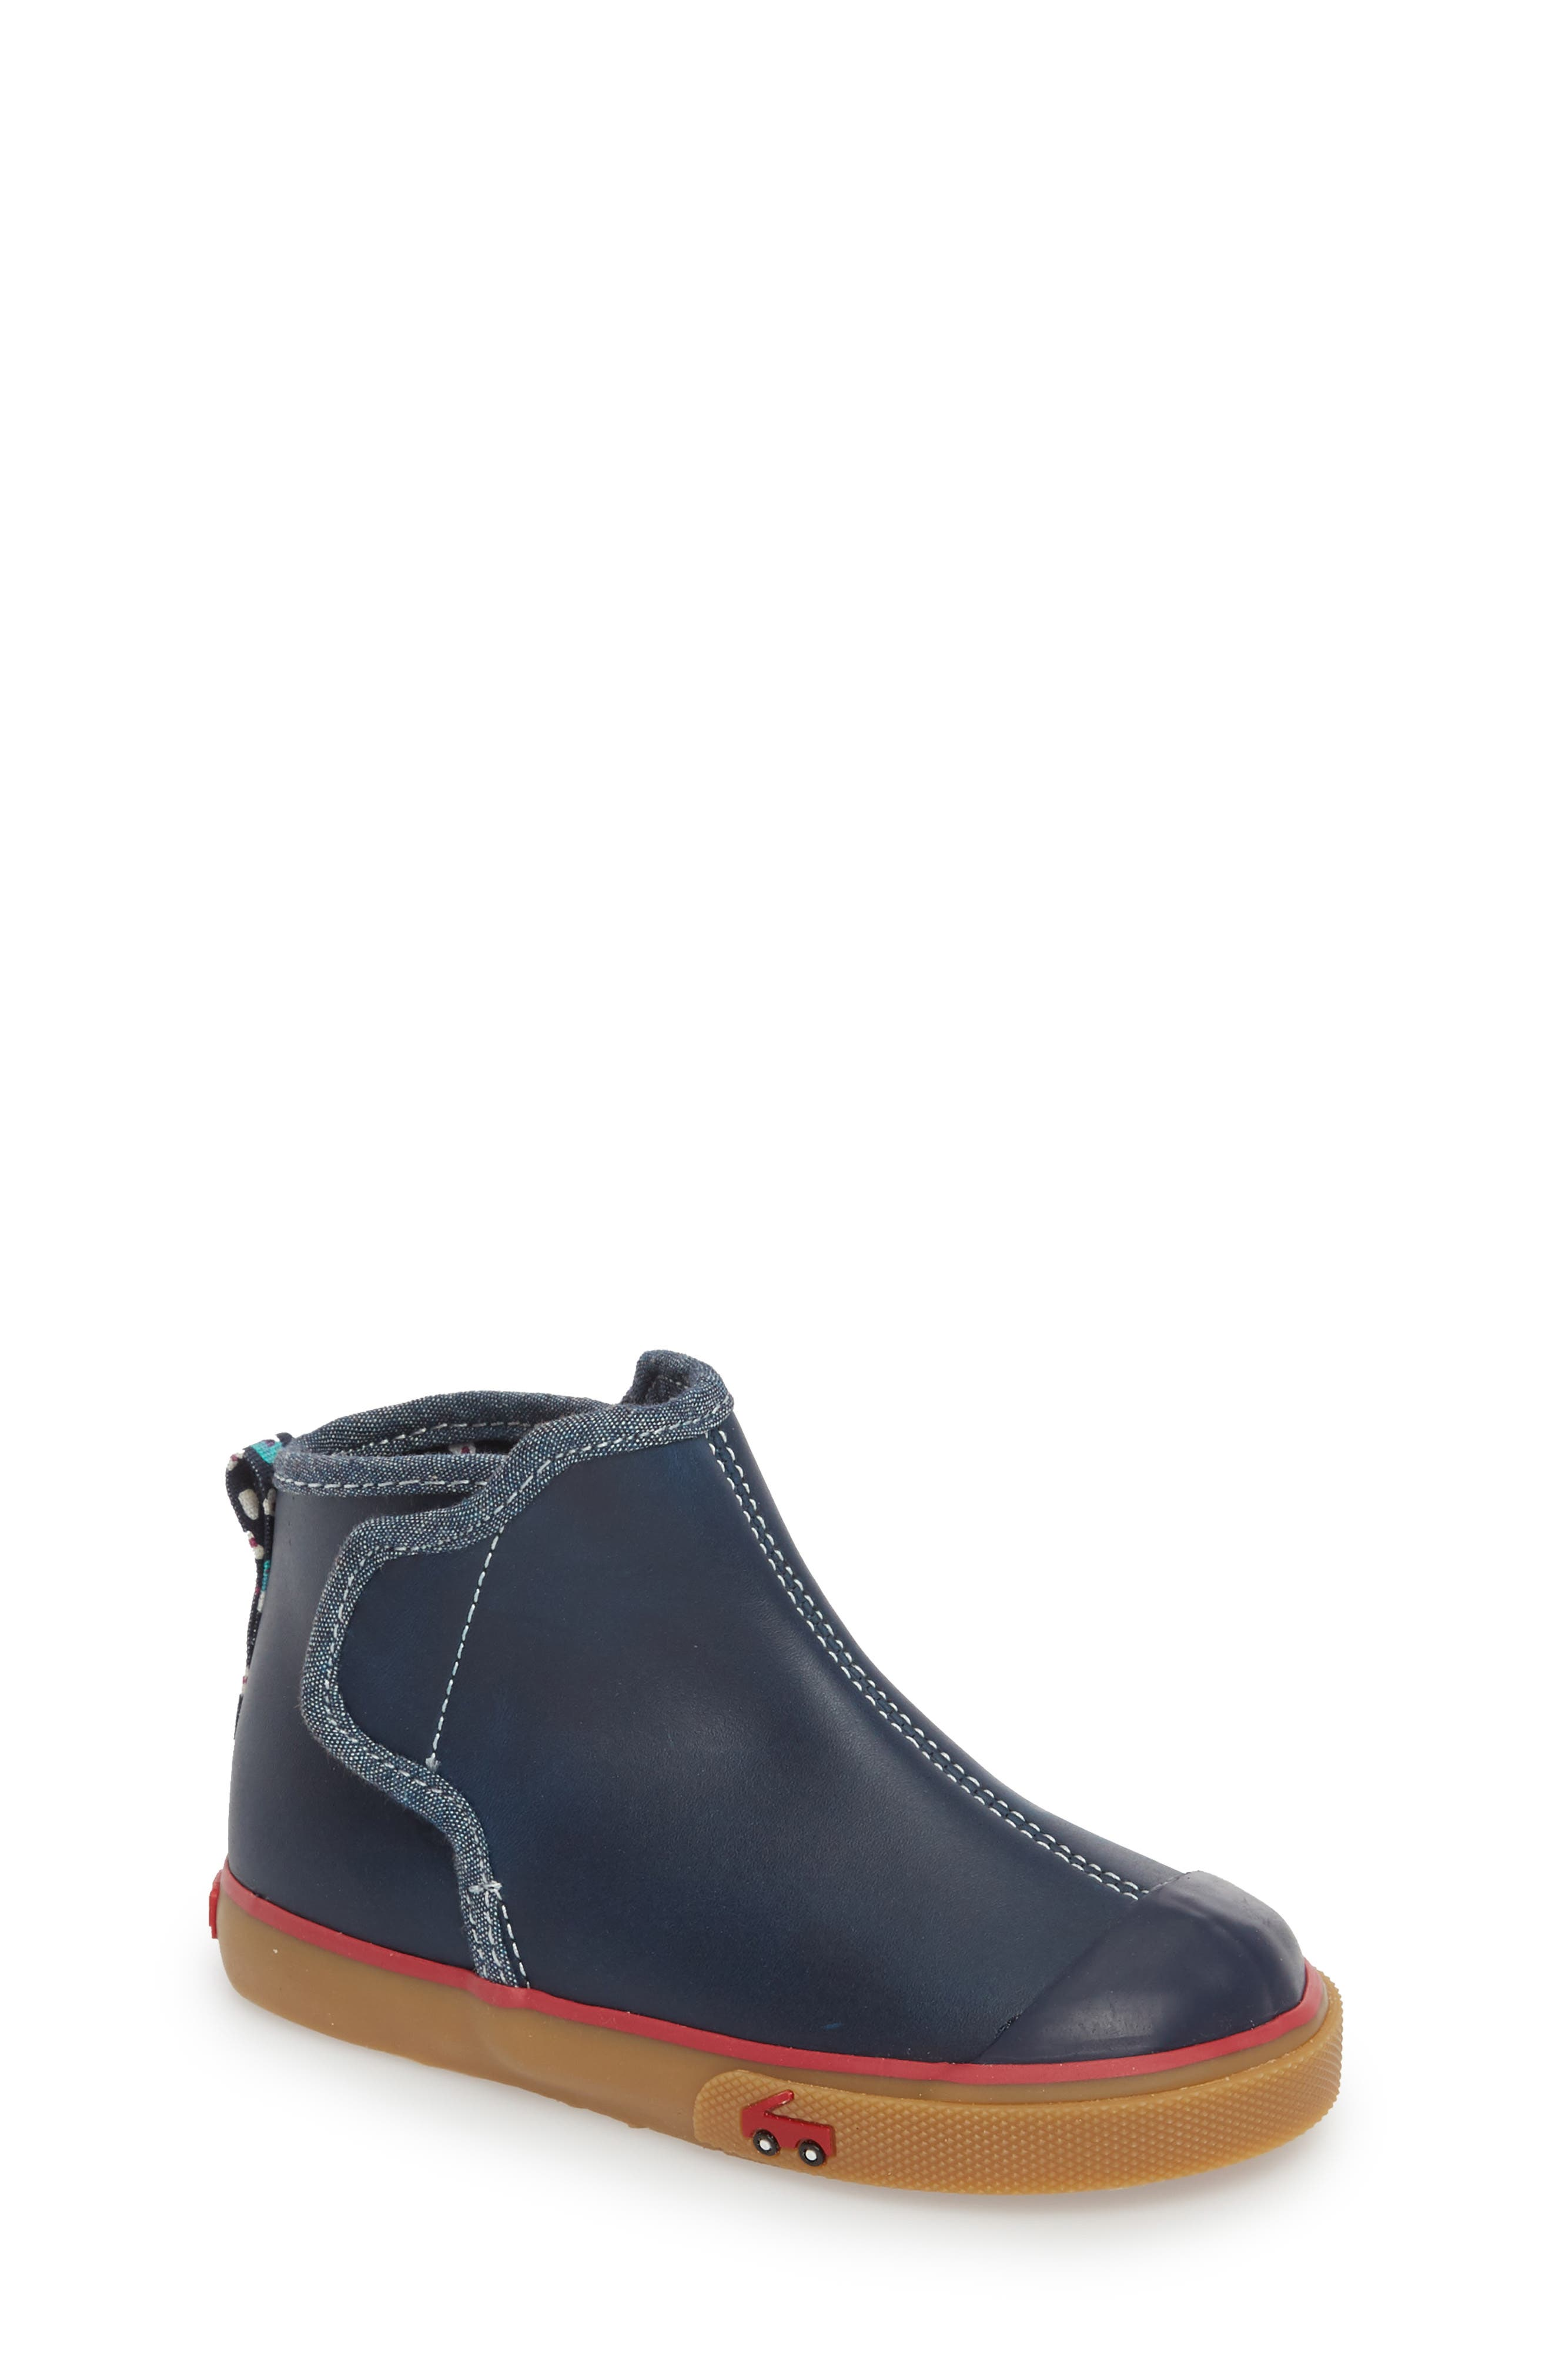 Mia Boot,                             Main thumbnail 1, color,                             Navy Leather